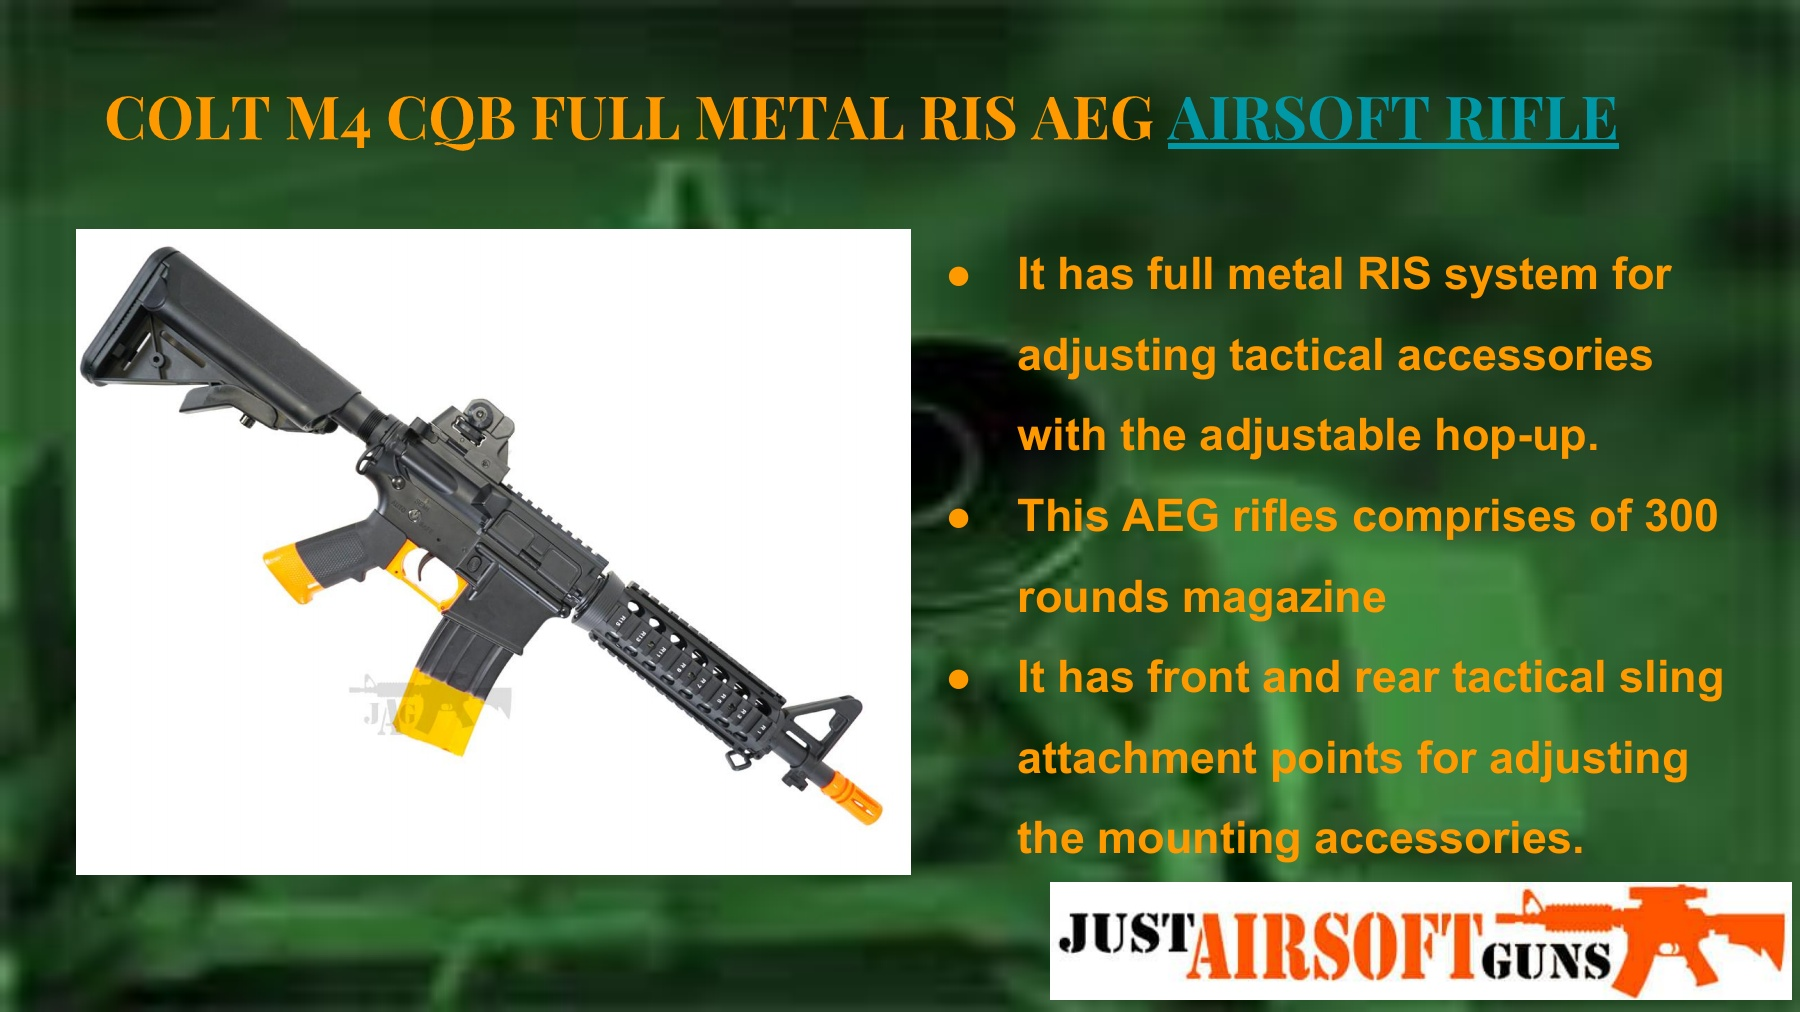 High End Airsoft Guns Pages 1 - 6 - Text Version | AnyFlip